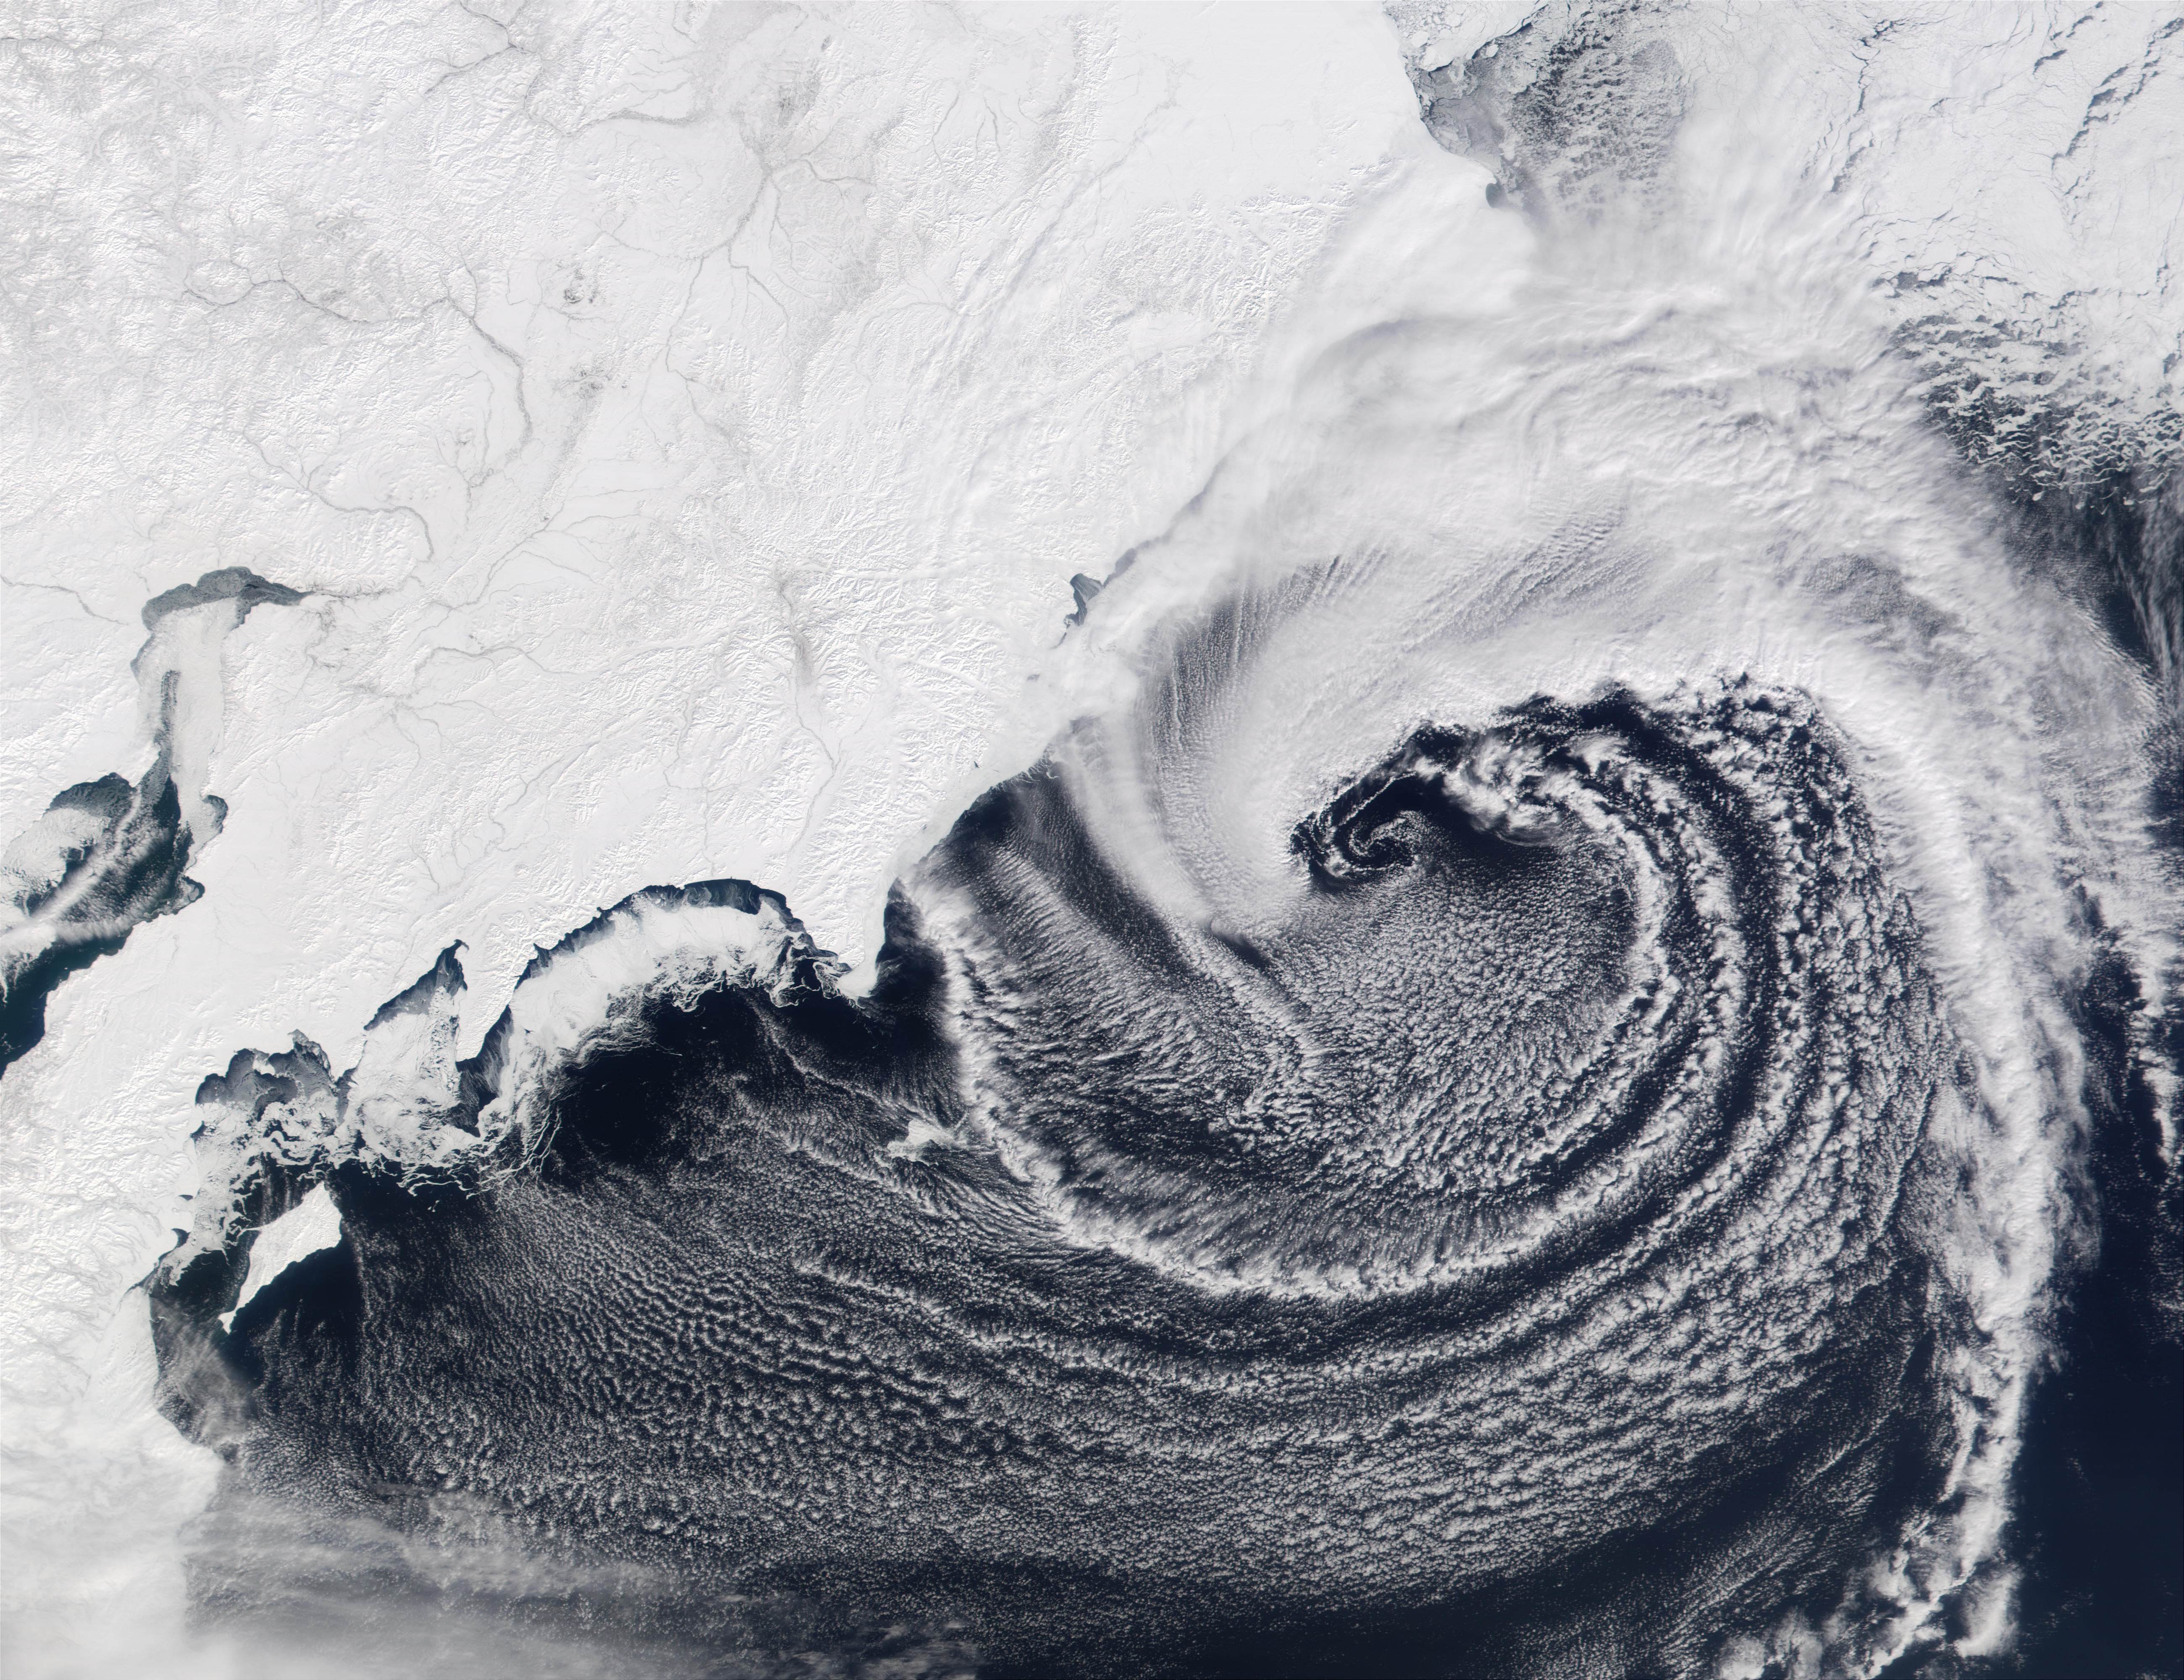 Low pressure system over the Bering Sea